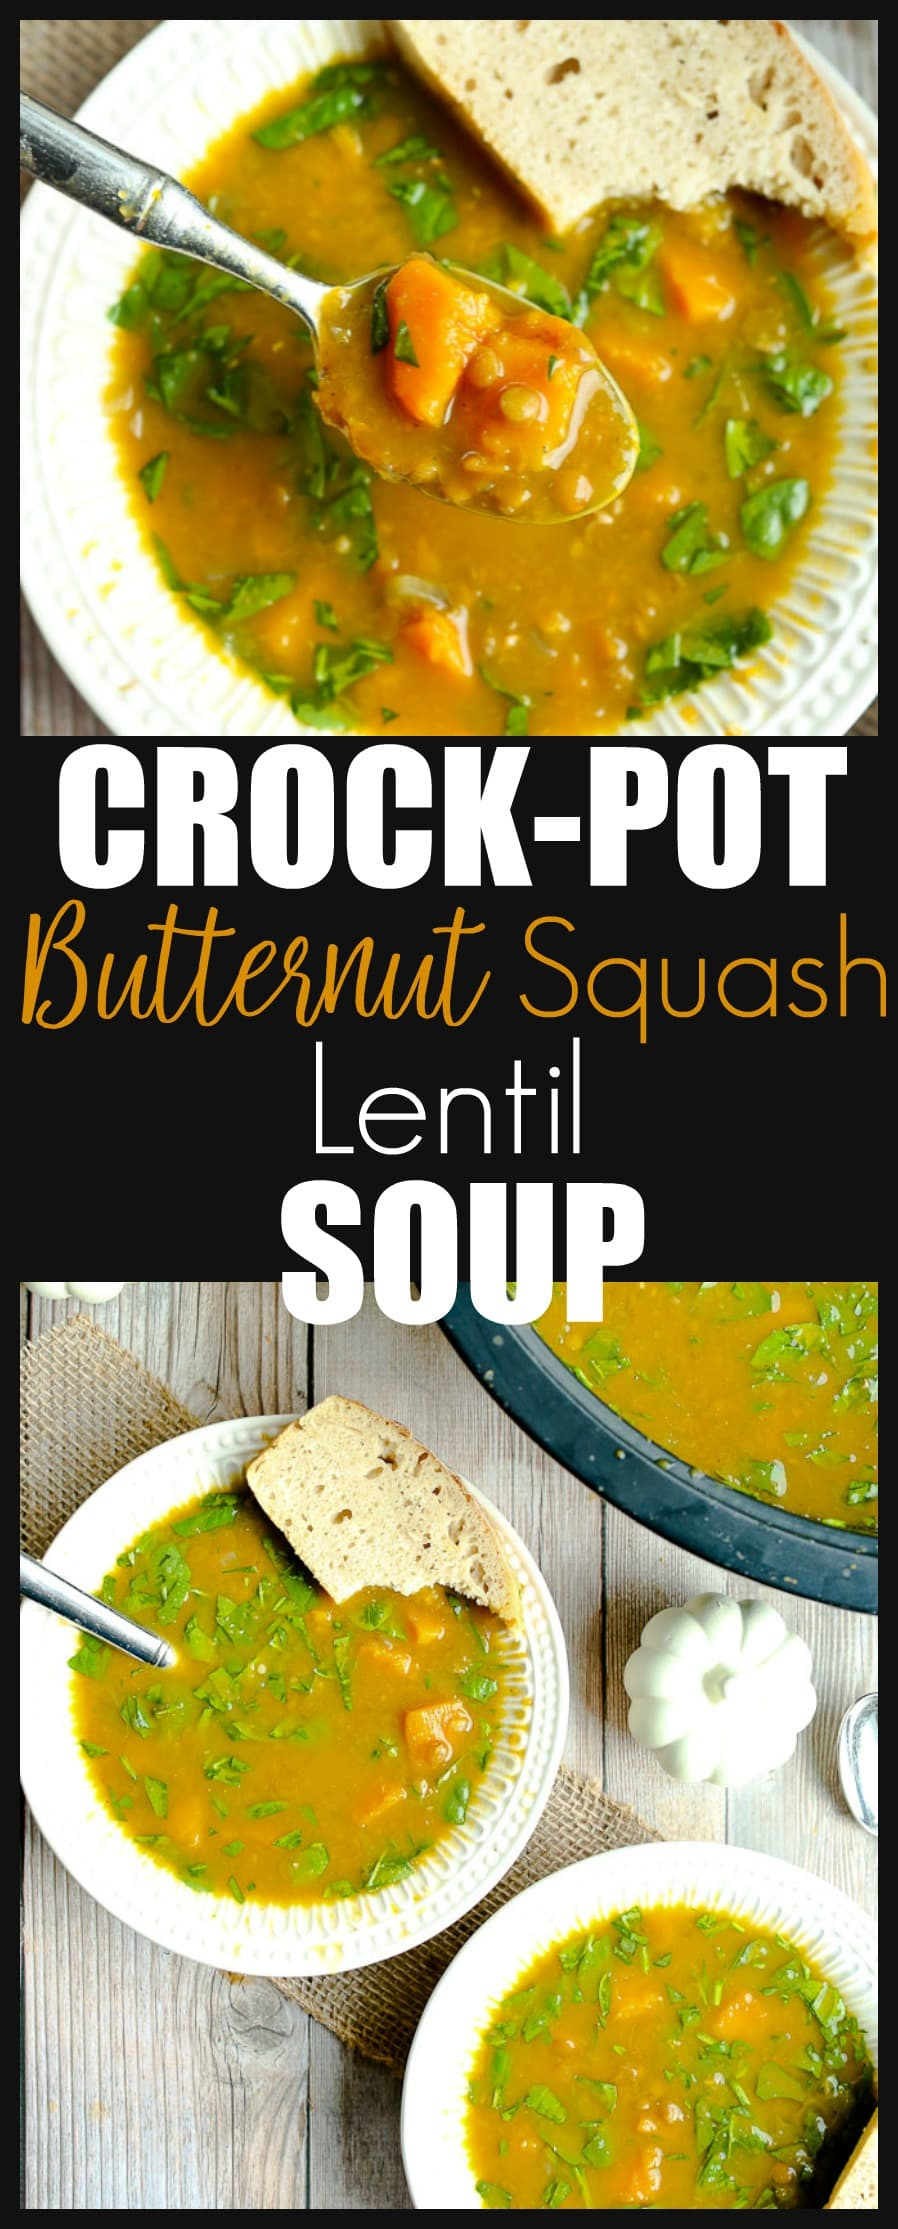 Slow Cooker Crockpot Butternut Squash Lentil Soup recipe. A quick and easy and healthy weeknight dinner idea! #vegan #gluten-free #slowcooker